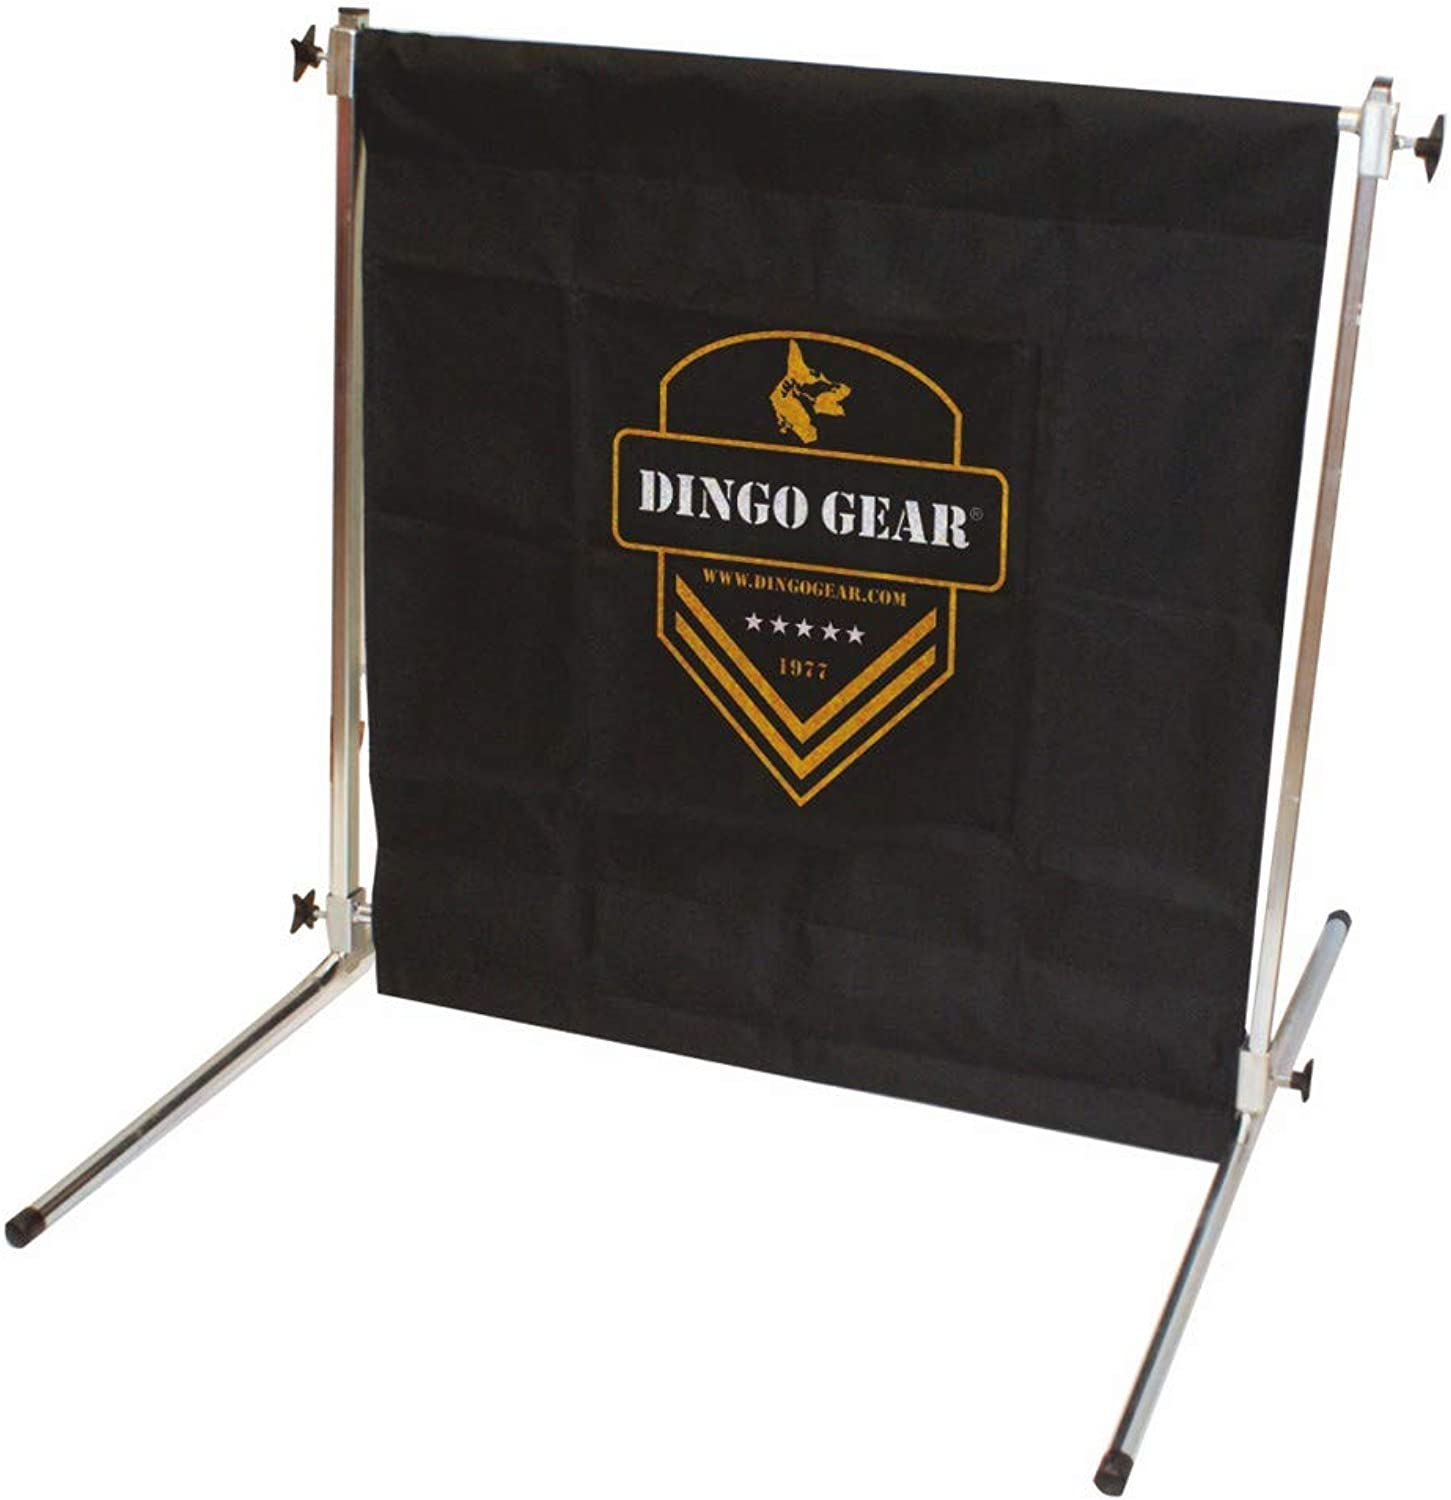 Dingo Gear Hurdle Jump for Dog Training with Height Adjustment to 1 Meter, Obstacle Metal Built with Military Fabric, Handmade IPO Frame S02900